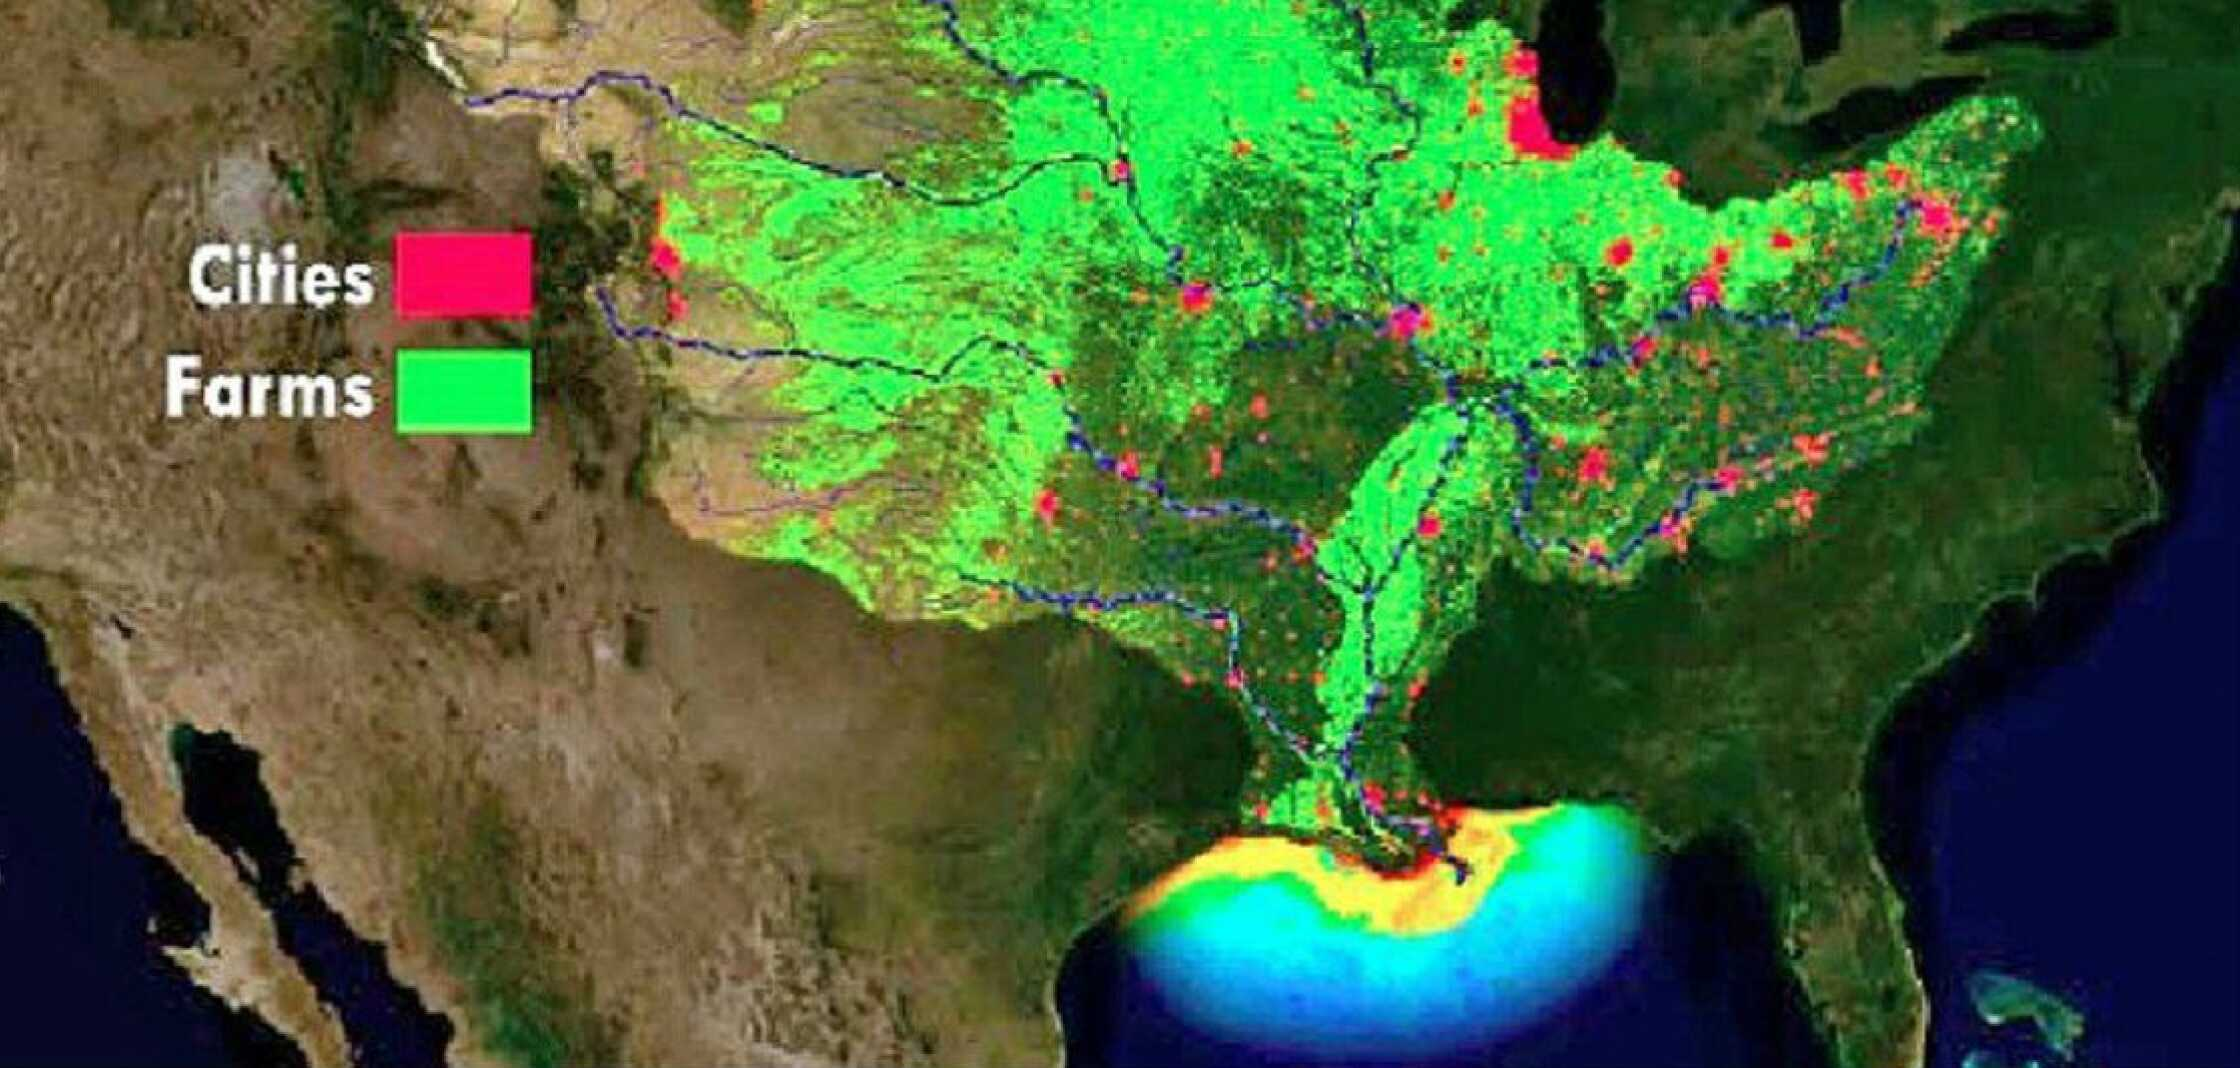 The NOAA map shows in general how runoff from farms in green and cities in red drains into the Mississippi River.